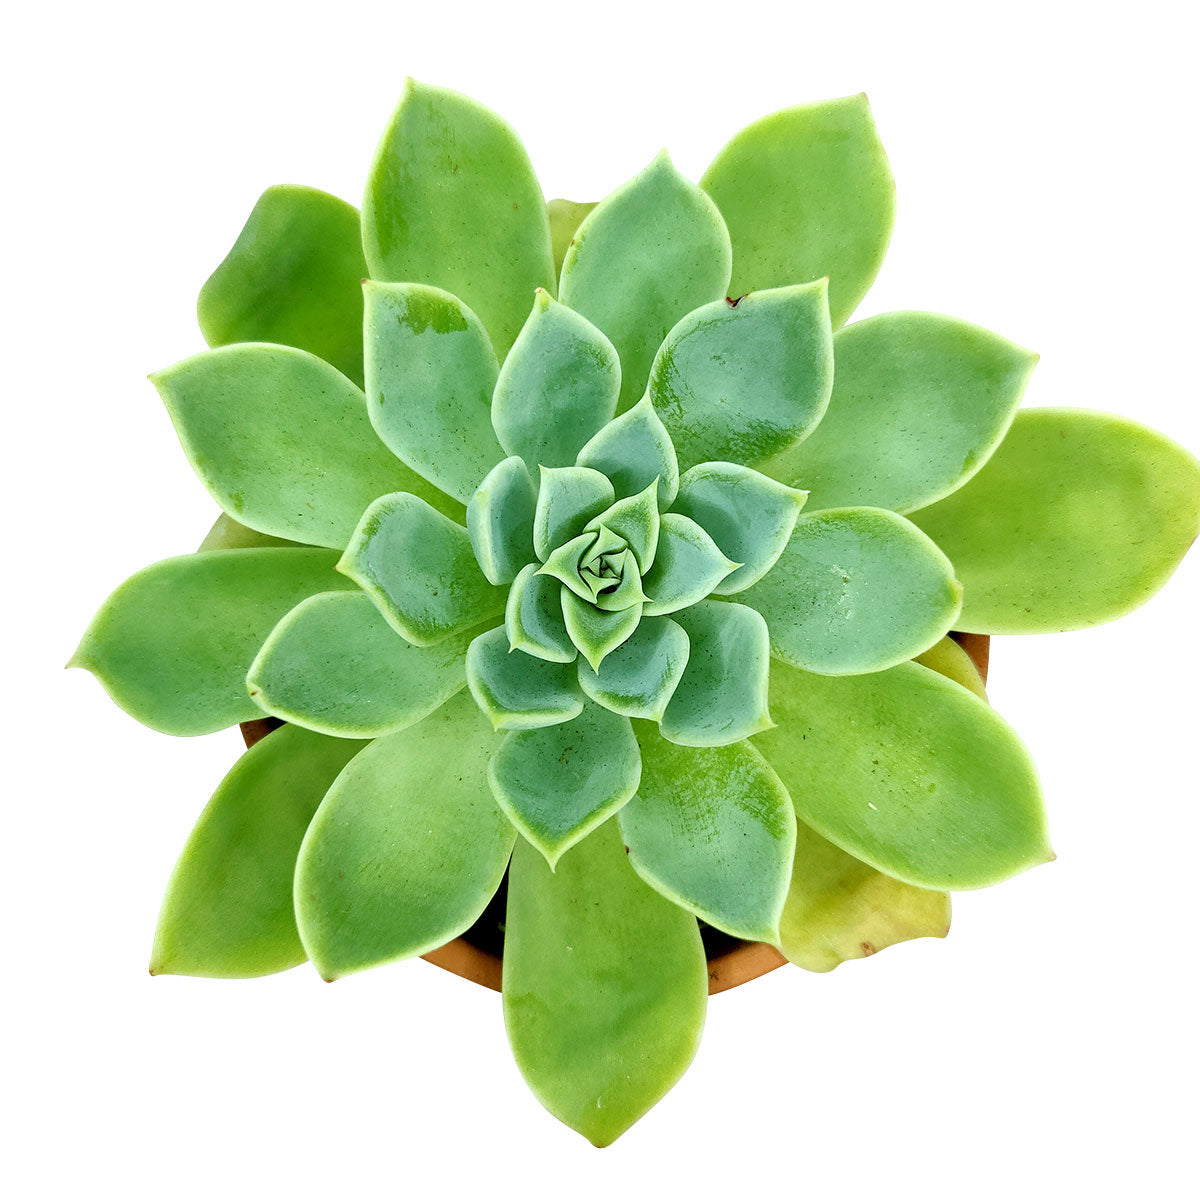 Echeveria Blue Atoll plant, Succulents shop near me, succulent care guide, Rare succulents, succulent care, monthly succulents, how to grow succulents, cactus, succulents store in CA, Echeveria Blue Atoll plant in California, How to grow Echeveria Blue Atoll plant, How to care echeveria succulents for thanksgiving, Easter echeveria gift